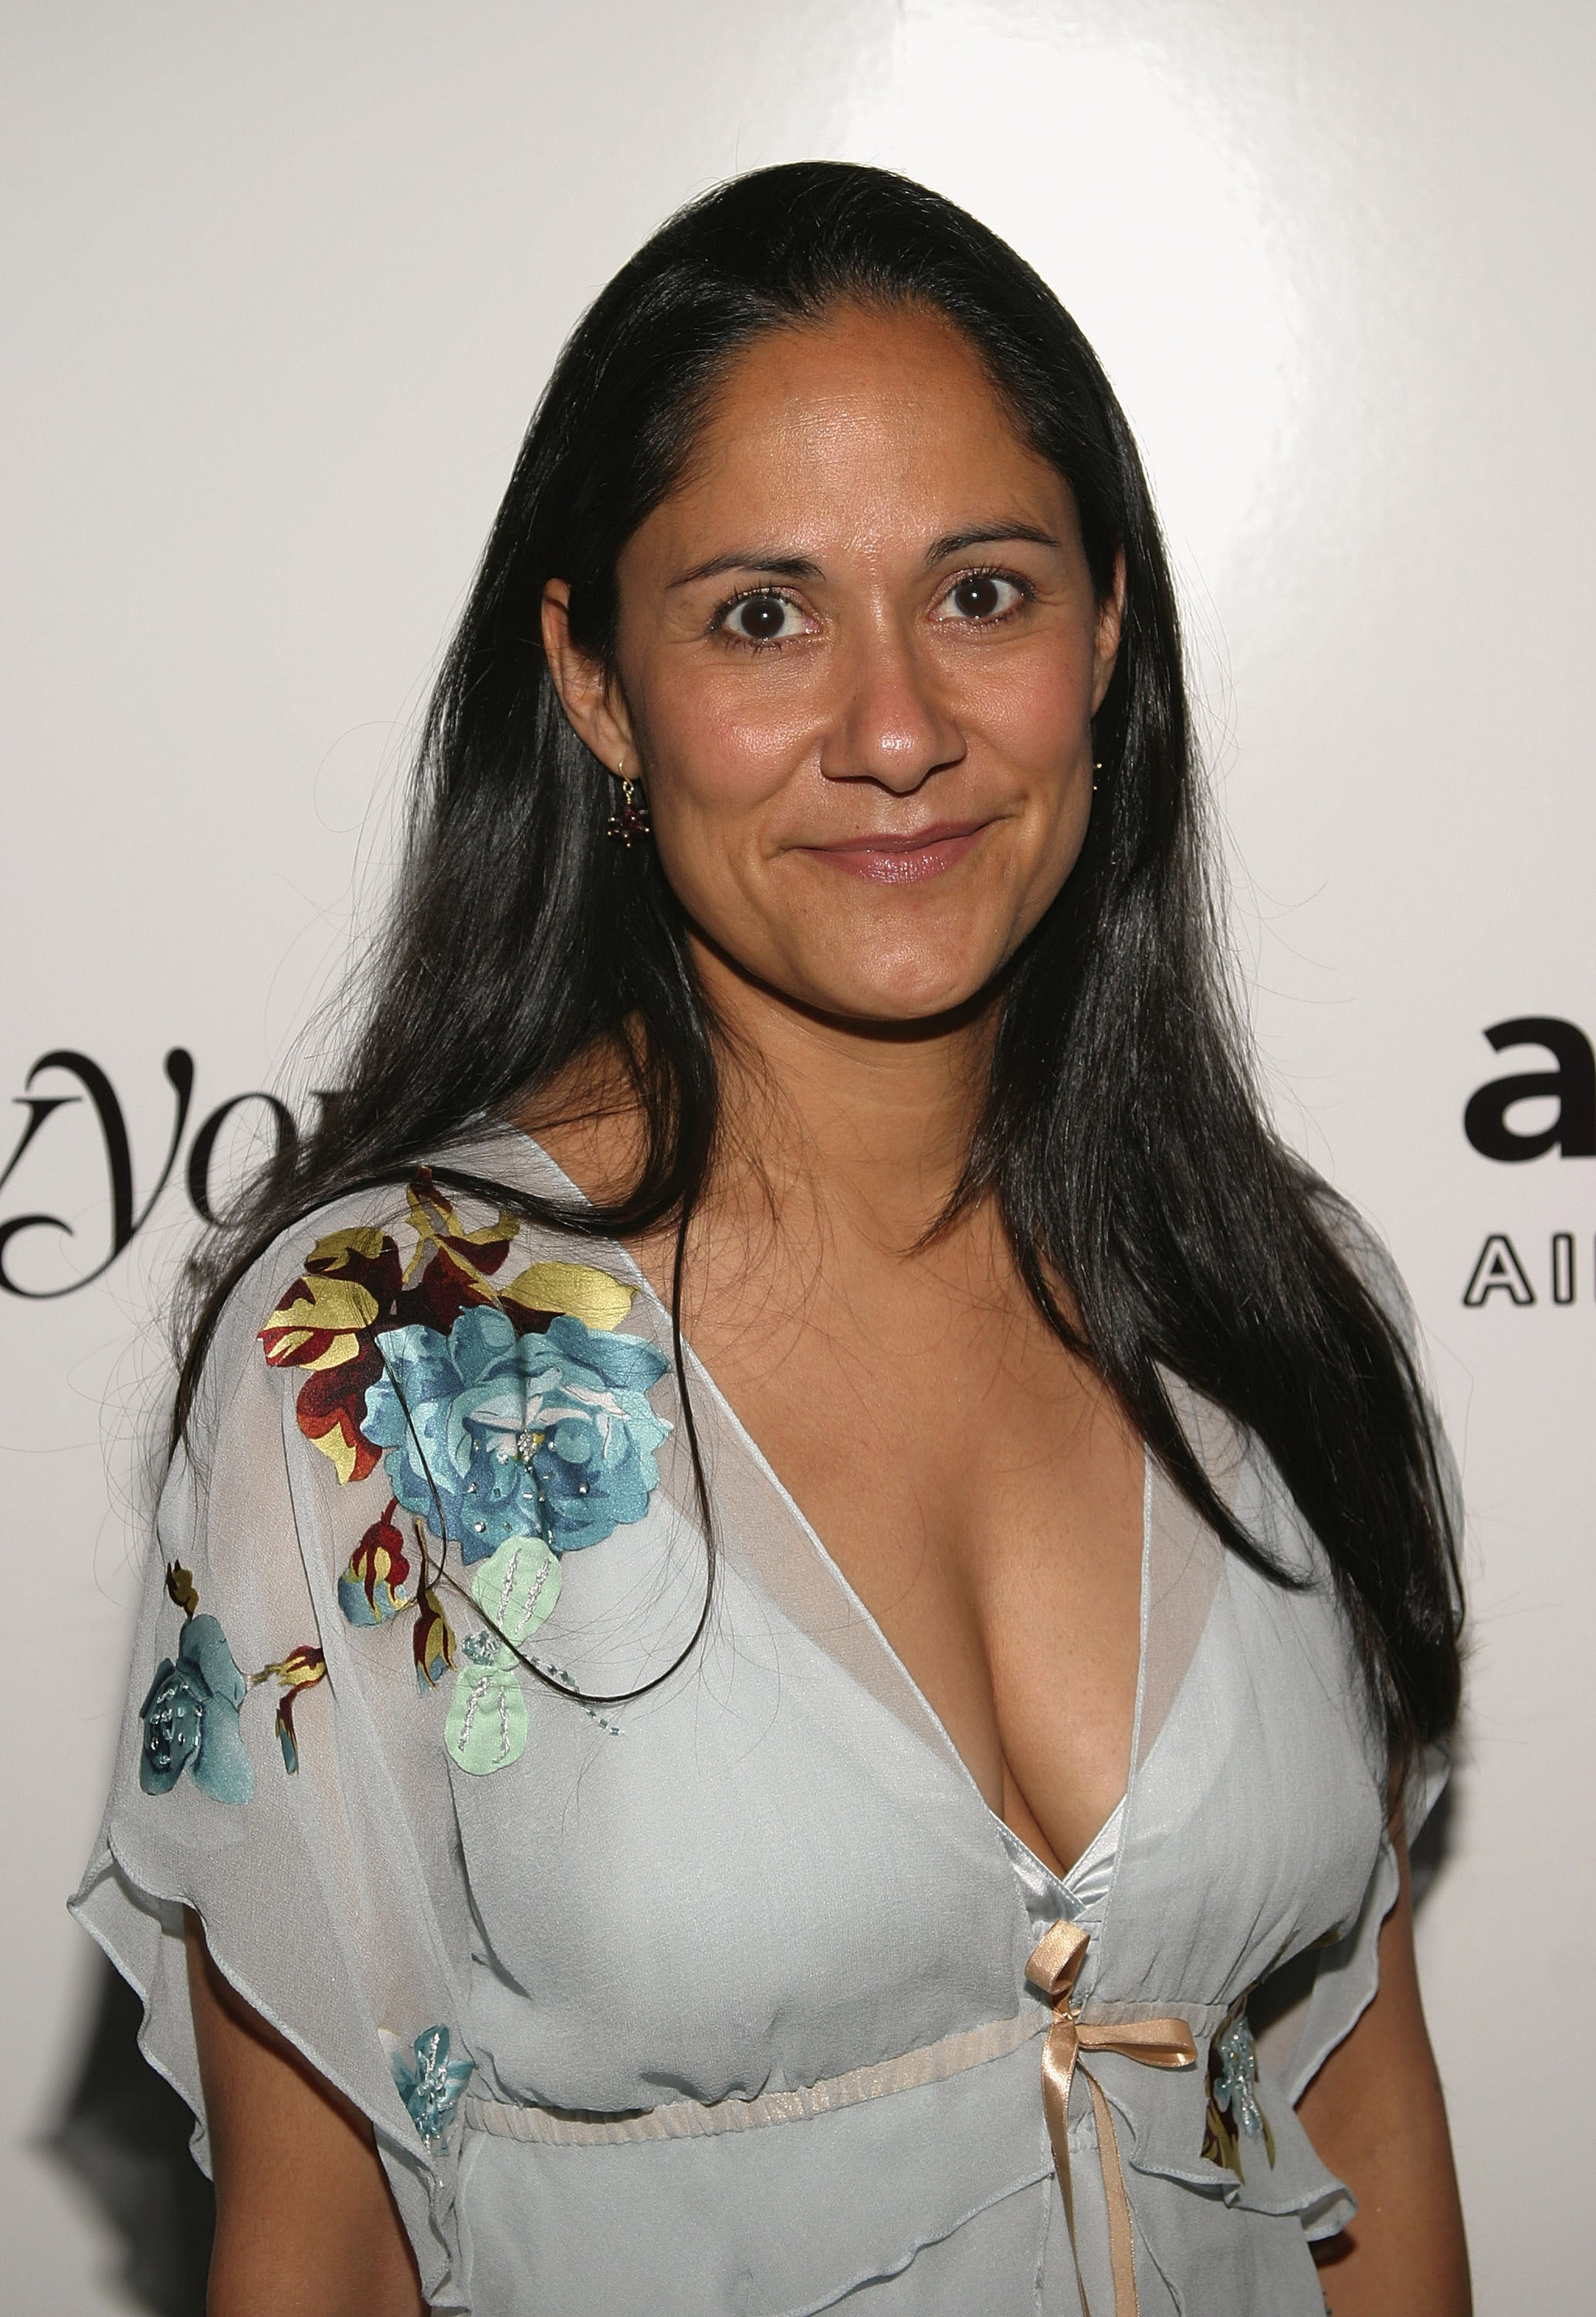 Sakina Jaffrey nude (12 photos), Topless, Hot, Instagram, butt 2017